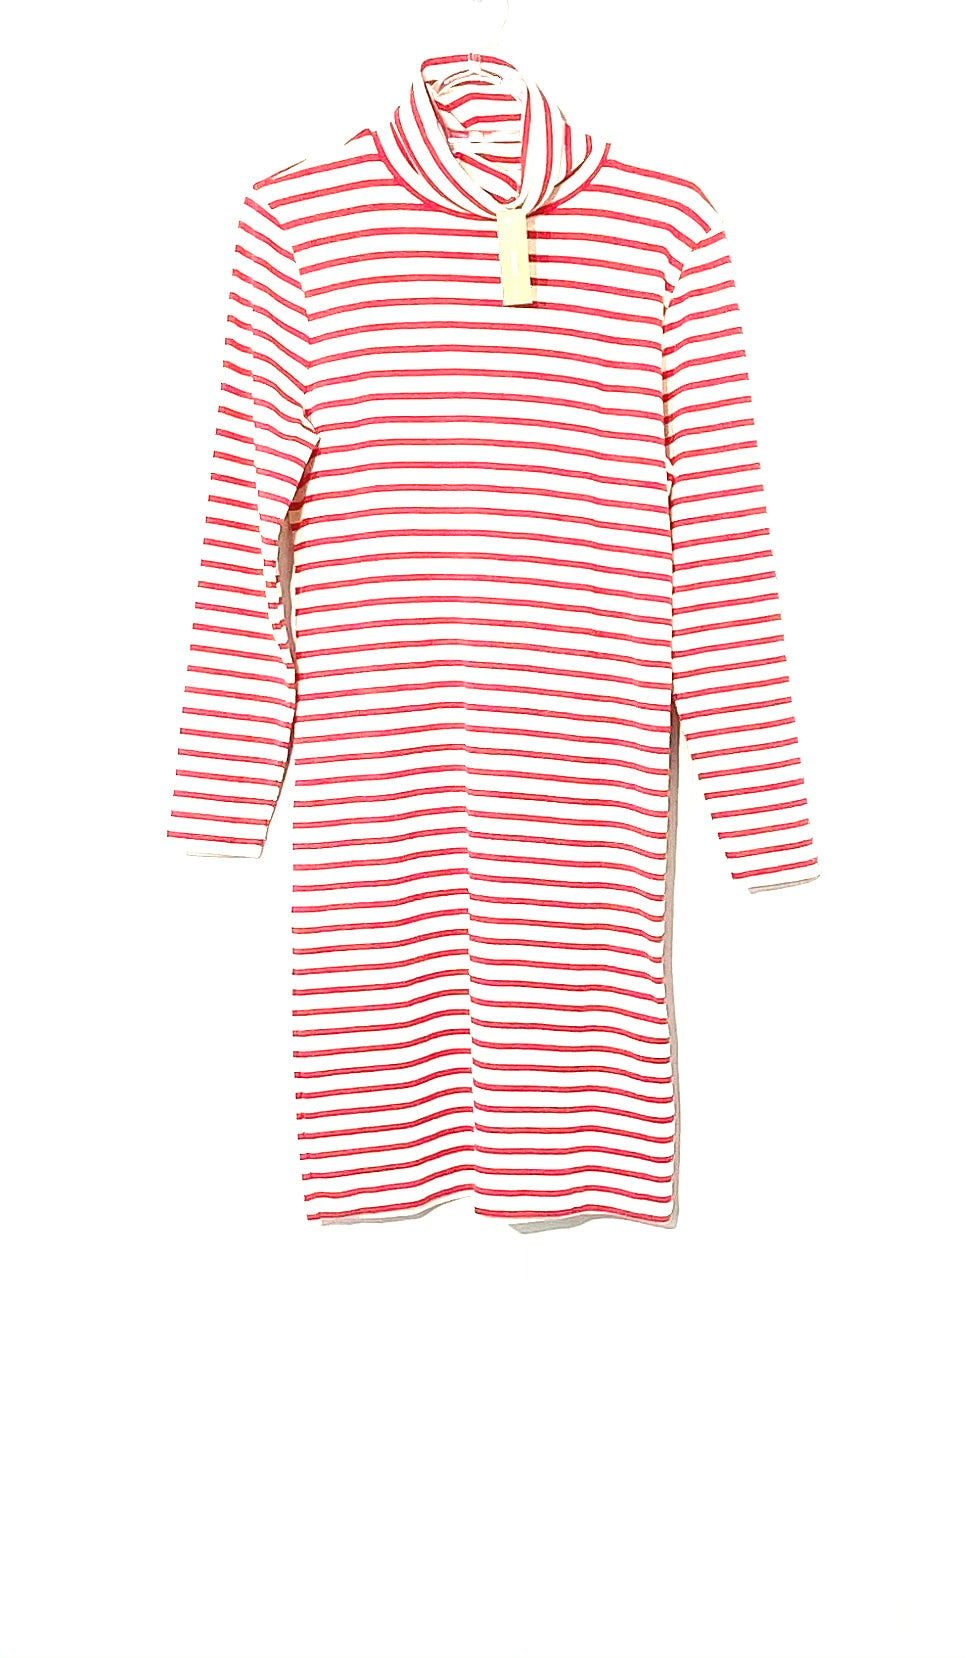 Primary Photo - BRAND: J CREW <BR>STYLE: DRESS SHORT LONG SLEEVE <BR>COLOR: STRIPED RED AND WHITE<BR>SIZE: M <BR>SKU: 262-26275-71997